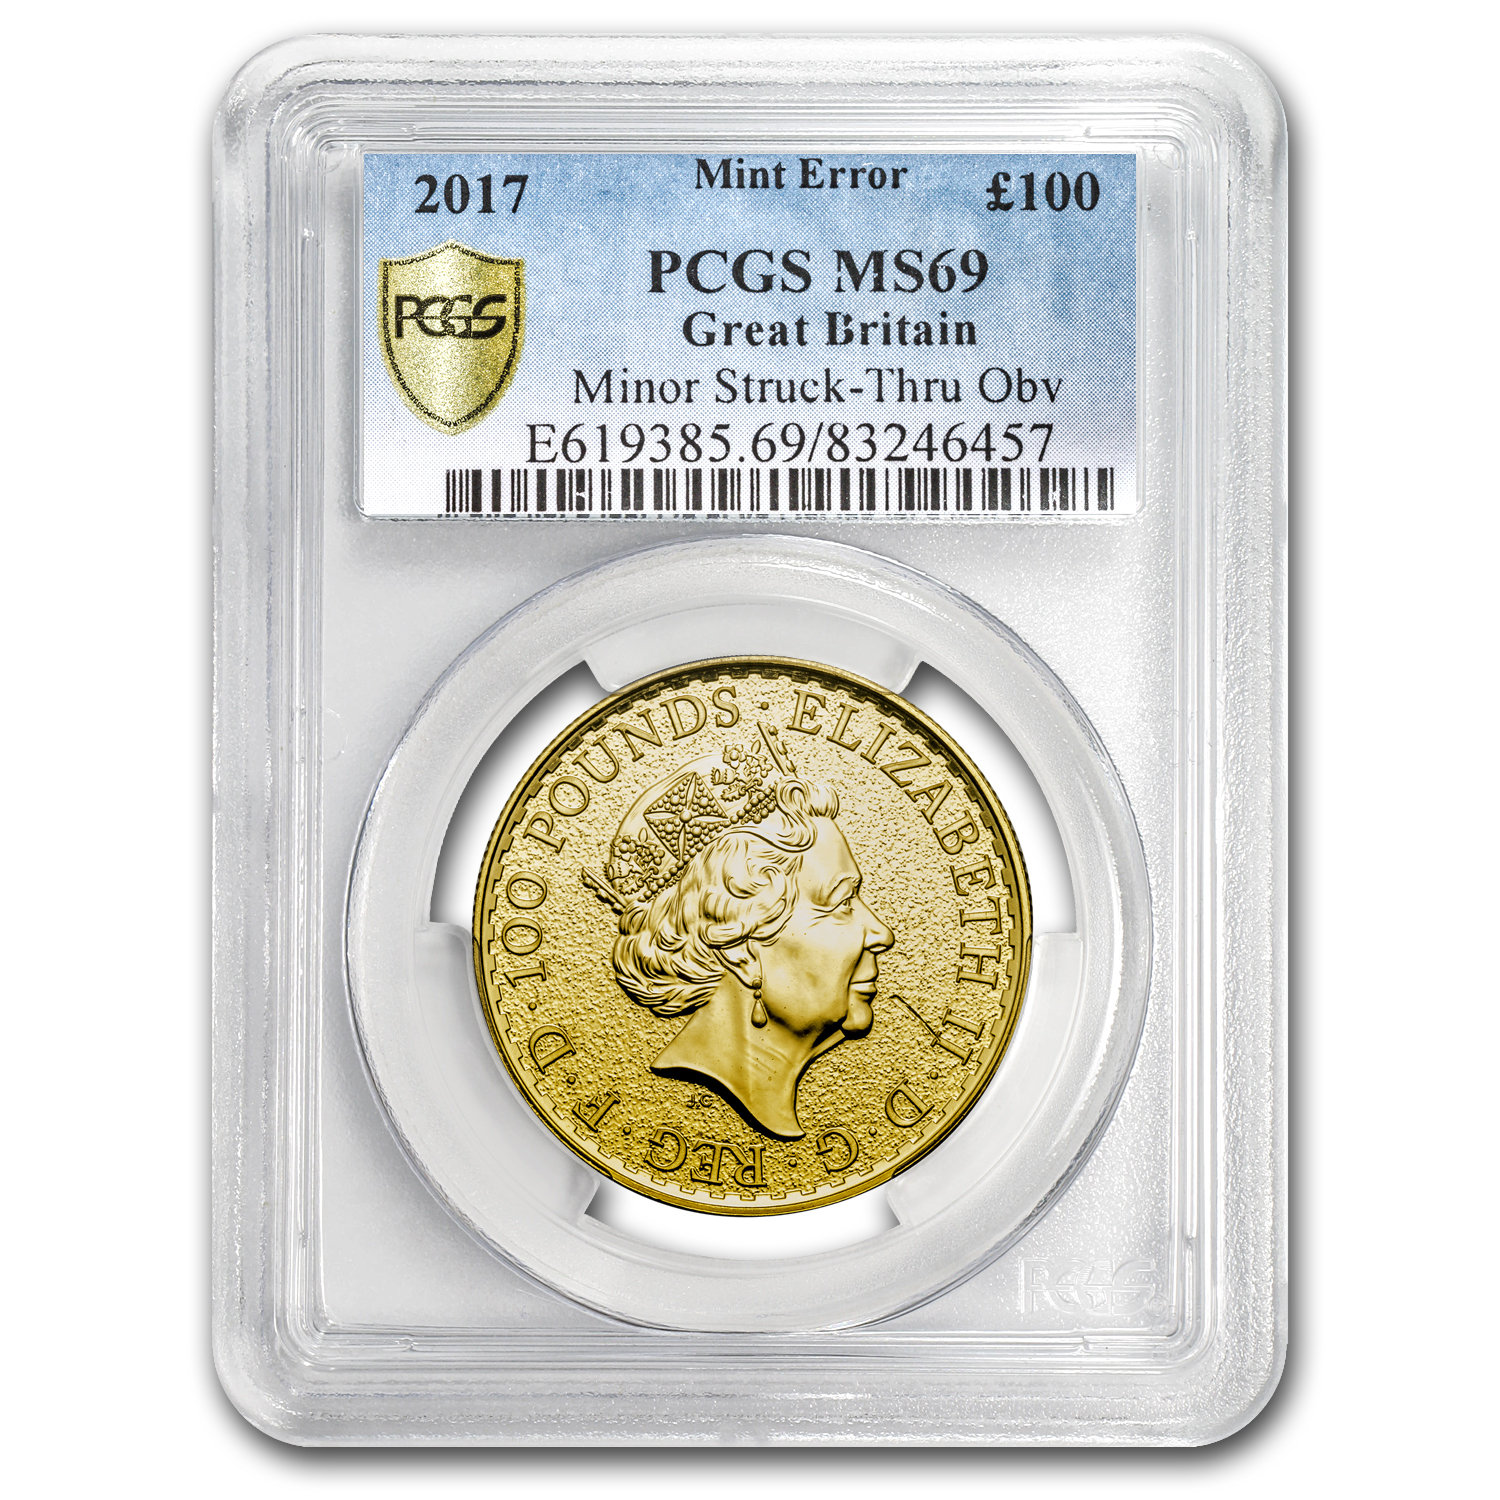 2017 Great Britain 1 oz Gold Britannia MS-69 PCGS (Mint Error)